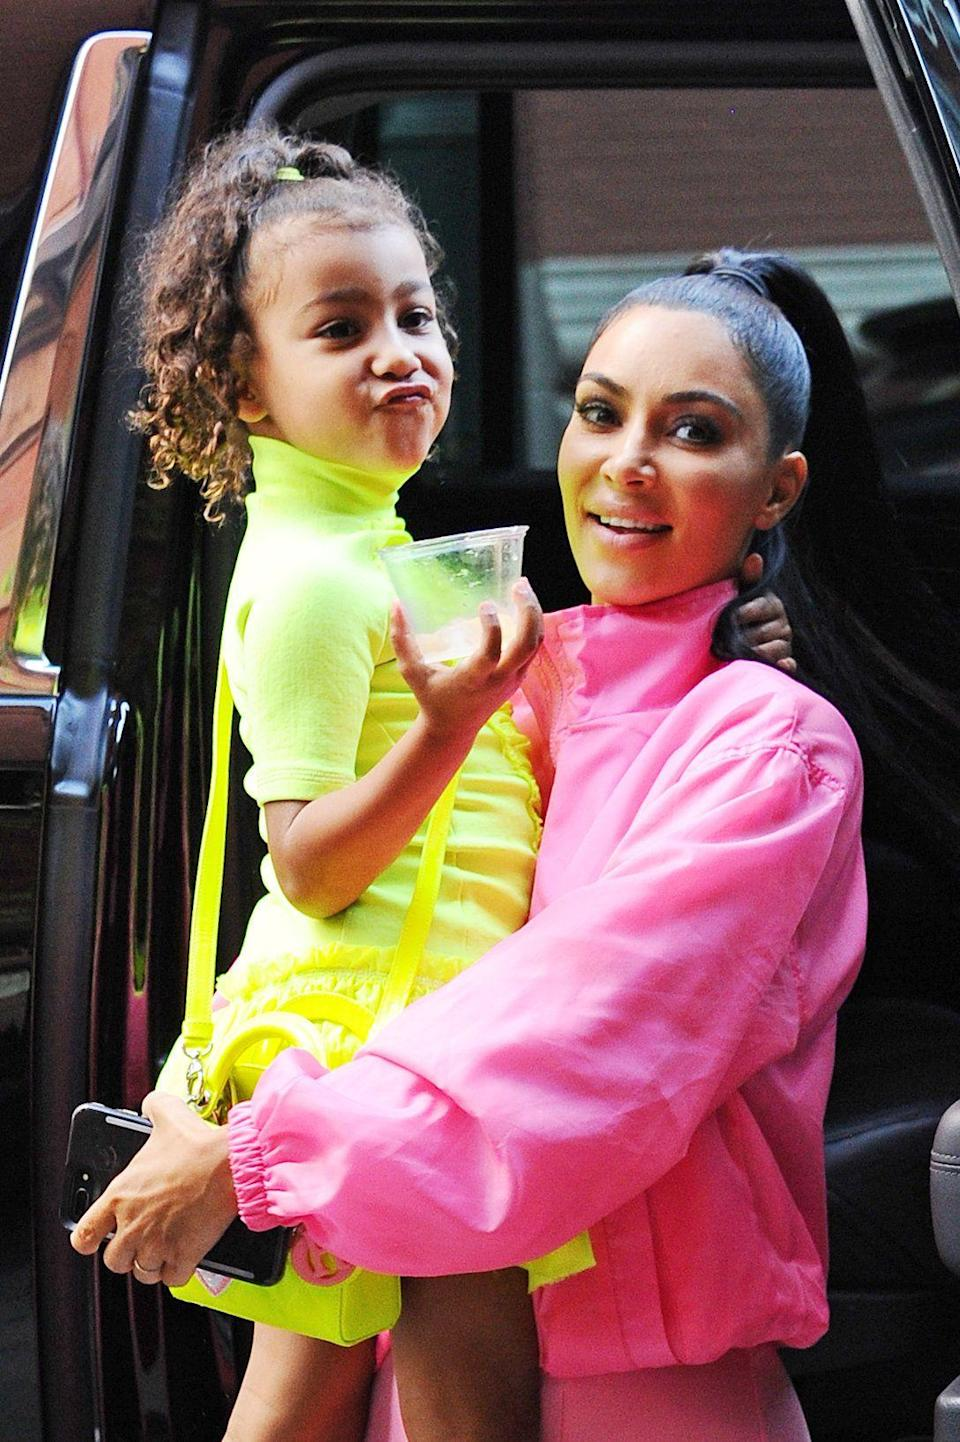 NEW YORK, NY - SEPTEMBER 29: Kim Kardashian and North West seen leaving Electric Lady Studios on September 29, 2018 in New York, NY. (Photo by Josiah Kamau/BuzzFoto via Getty Images)